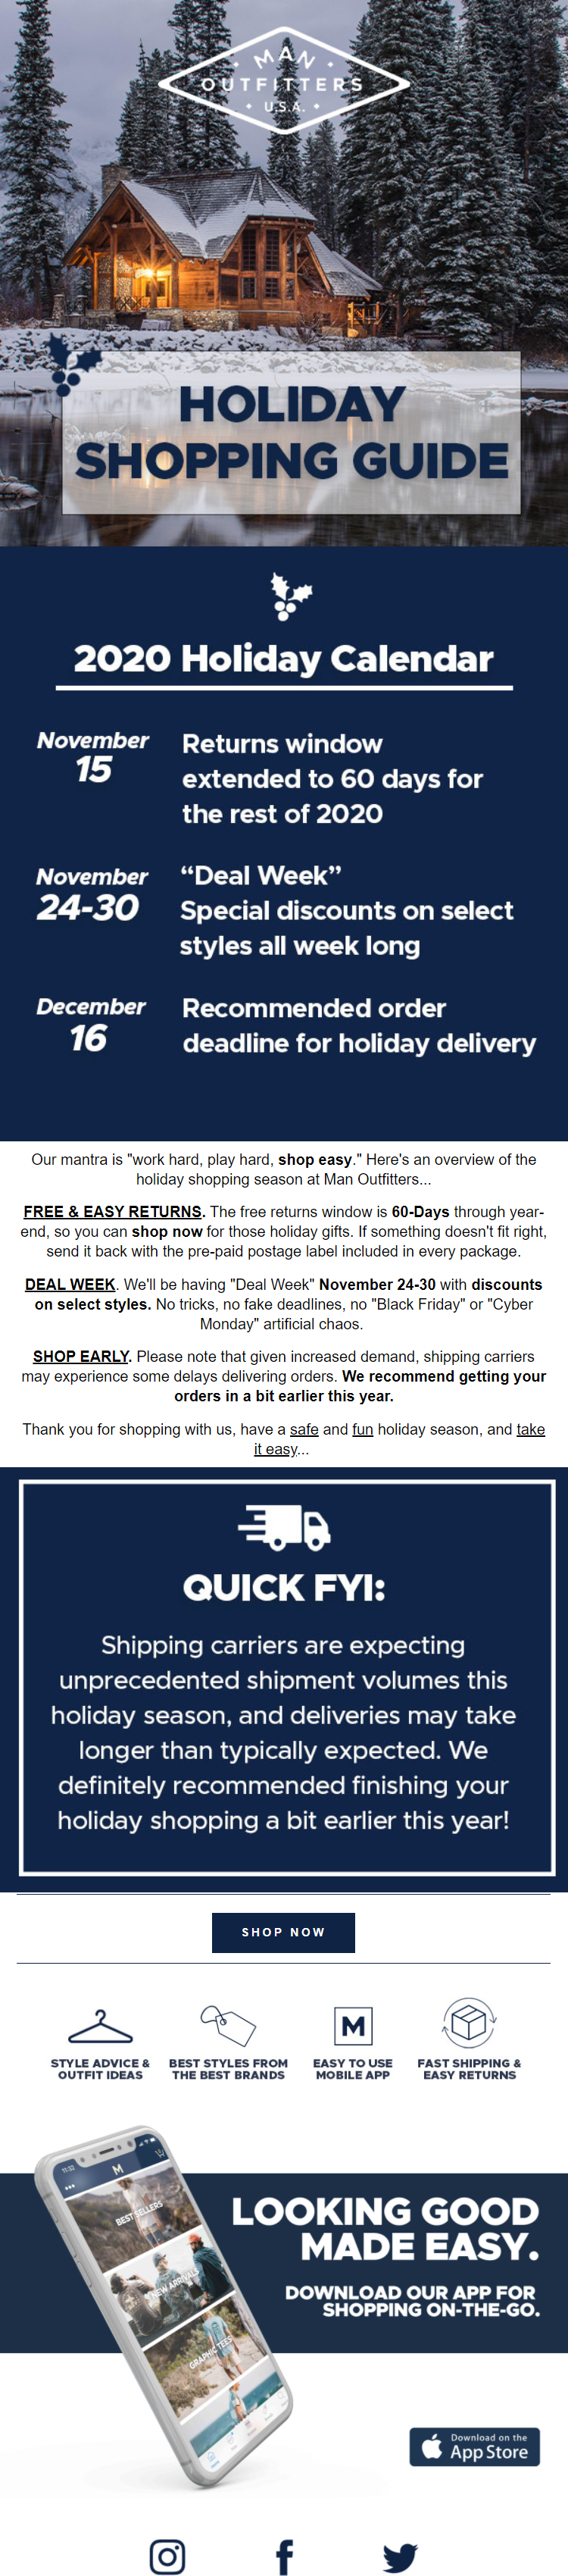 man-outfitters-inc-the-holiday-shopping-guide